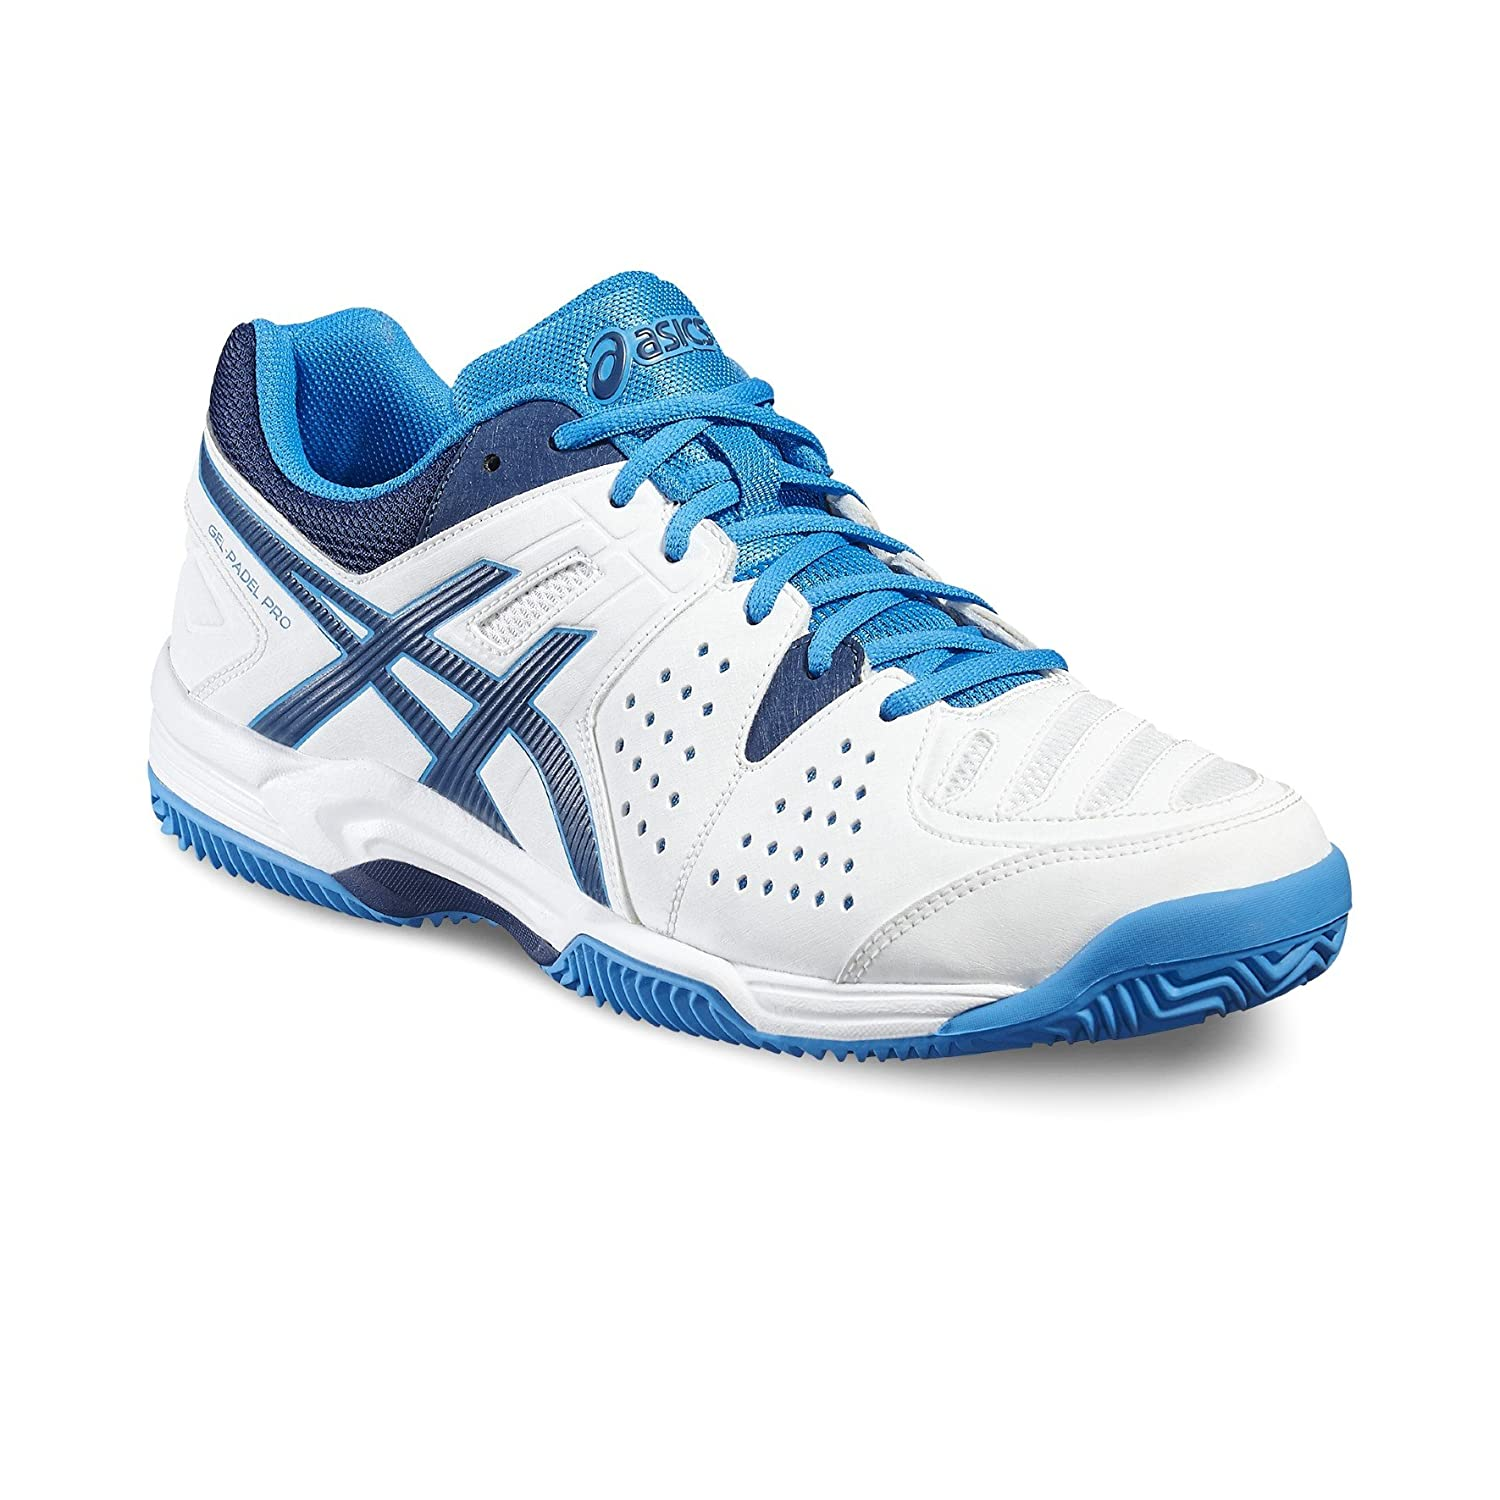 ASICS - Gel Padel Pro 3 SG, Color Blanco, Talla UK-6.5: Amazon.es ...